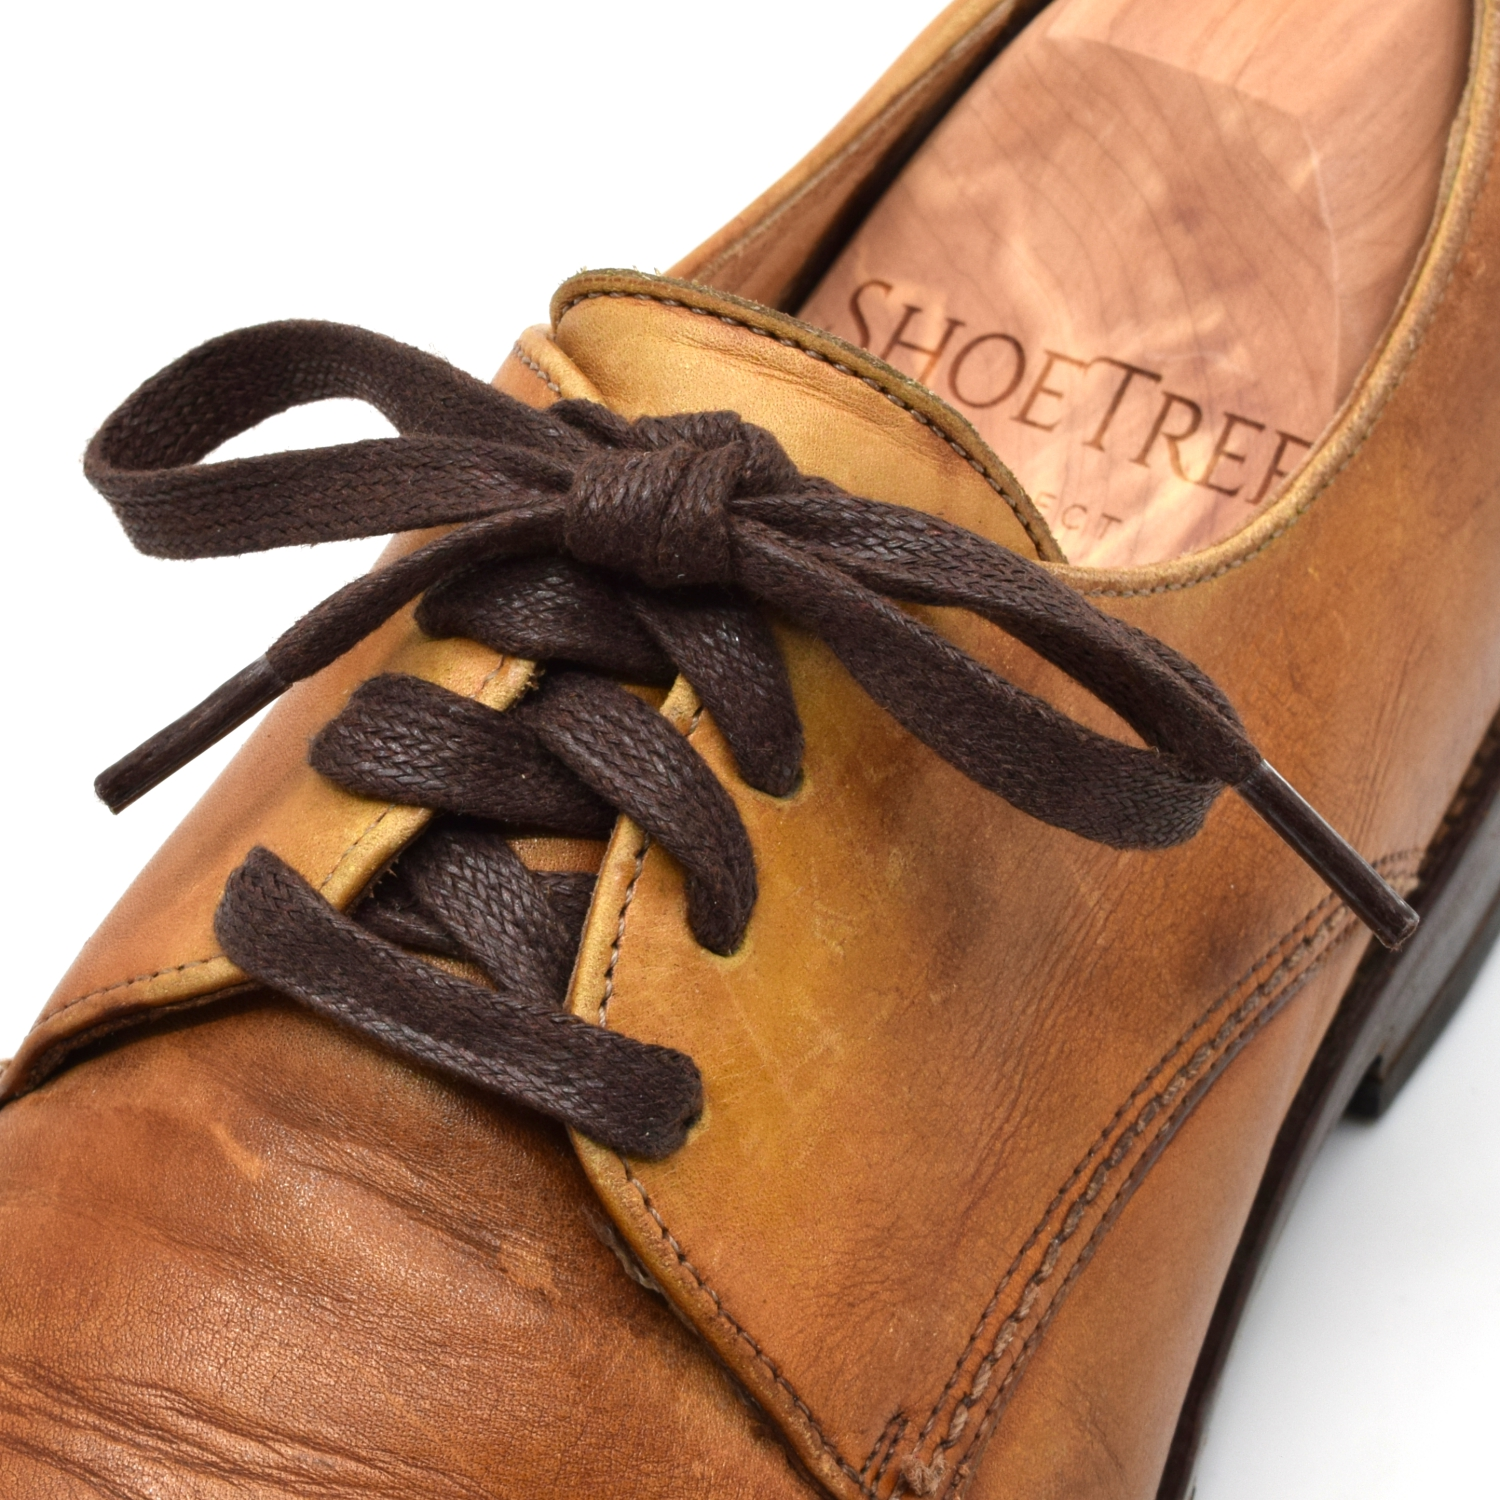 shoelaces flat waxed on shoe